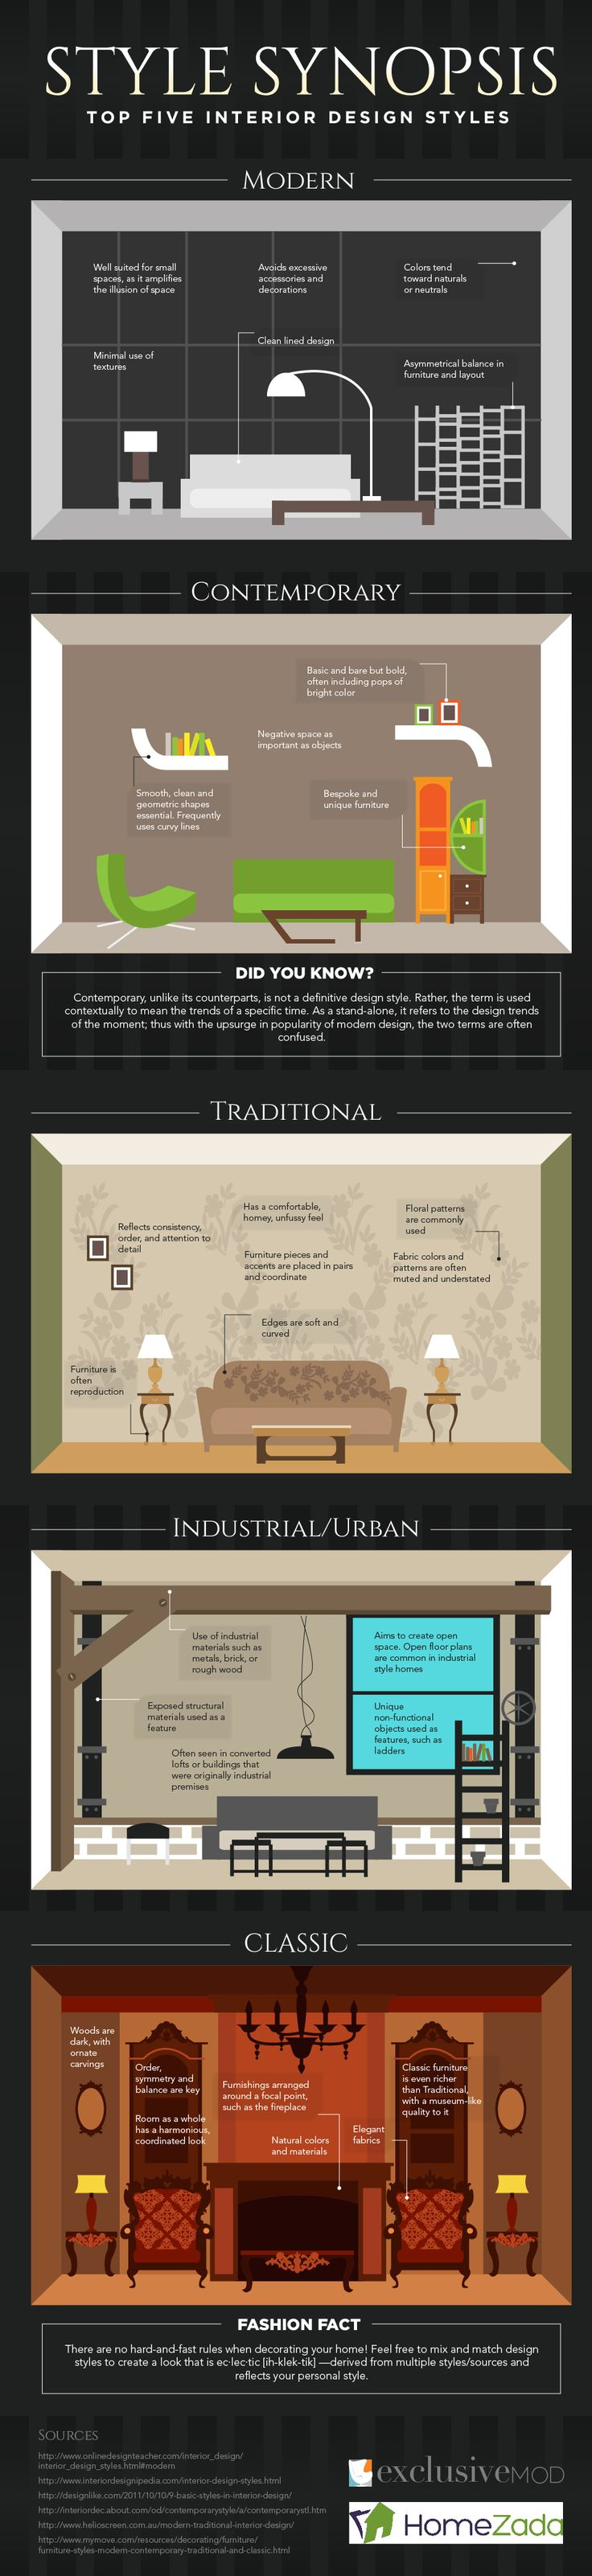 STIJLIDEE Interieur Styling Tip >> Top Five Interior Design Styles: Which One Describes Yours? [Infographic]